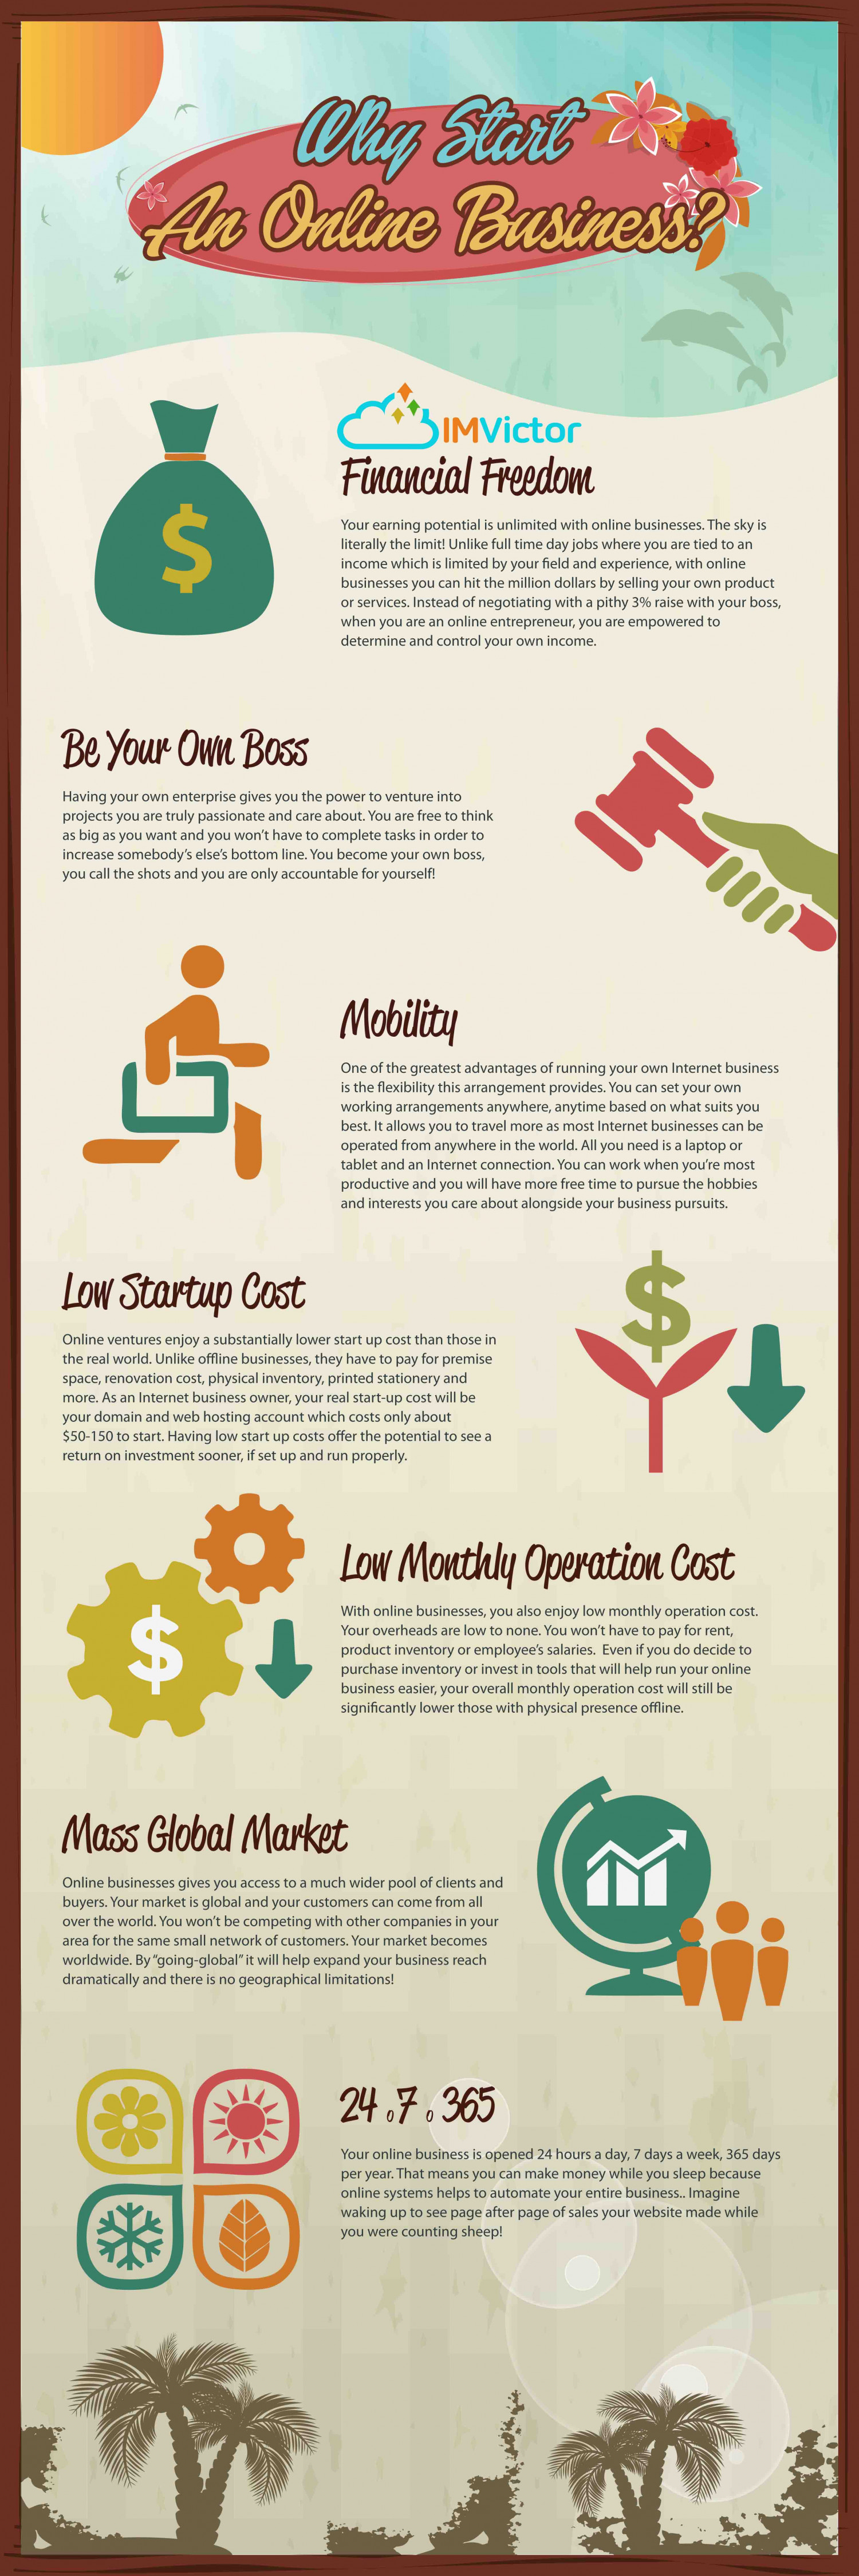 Why Start An Online Business? Infographic